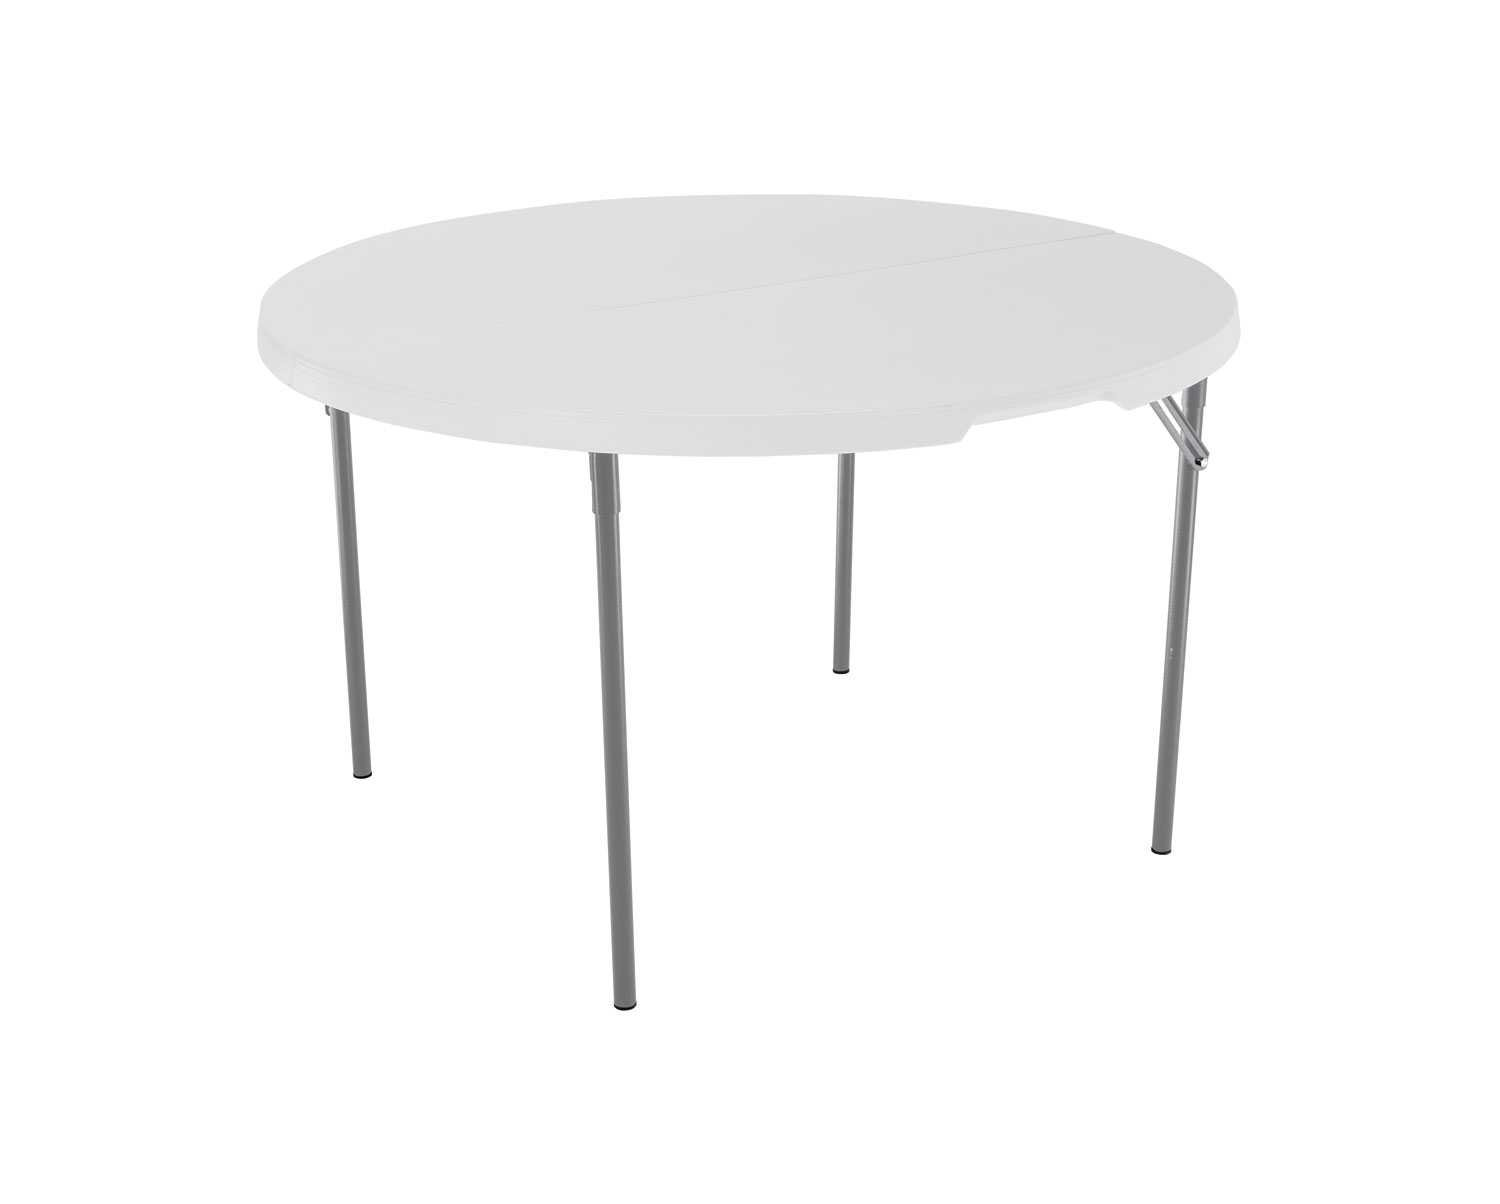 Lifetime 280064 Light Commercial Fold-in-Half Round Table, 4 Feet, White